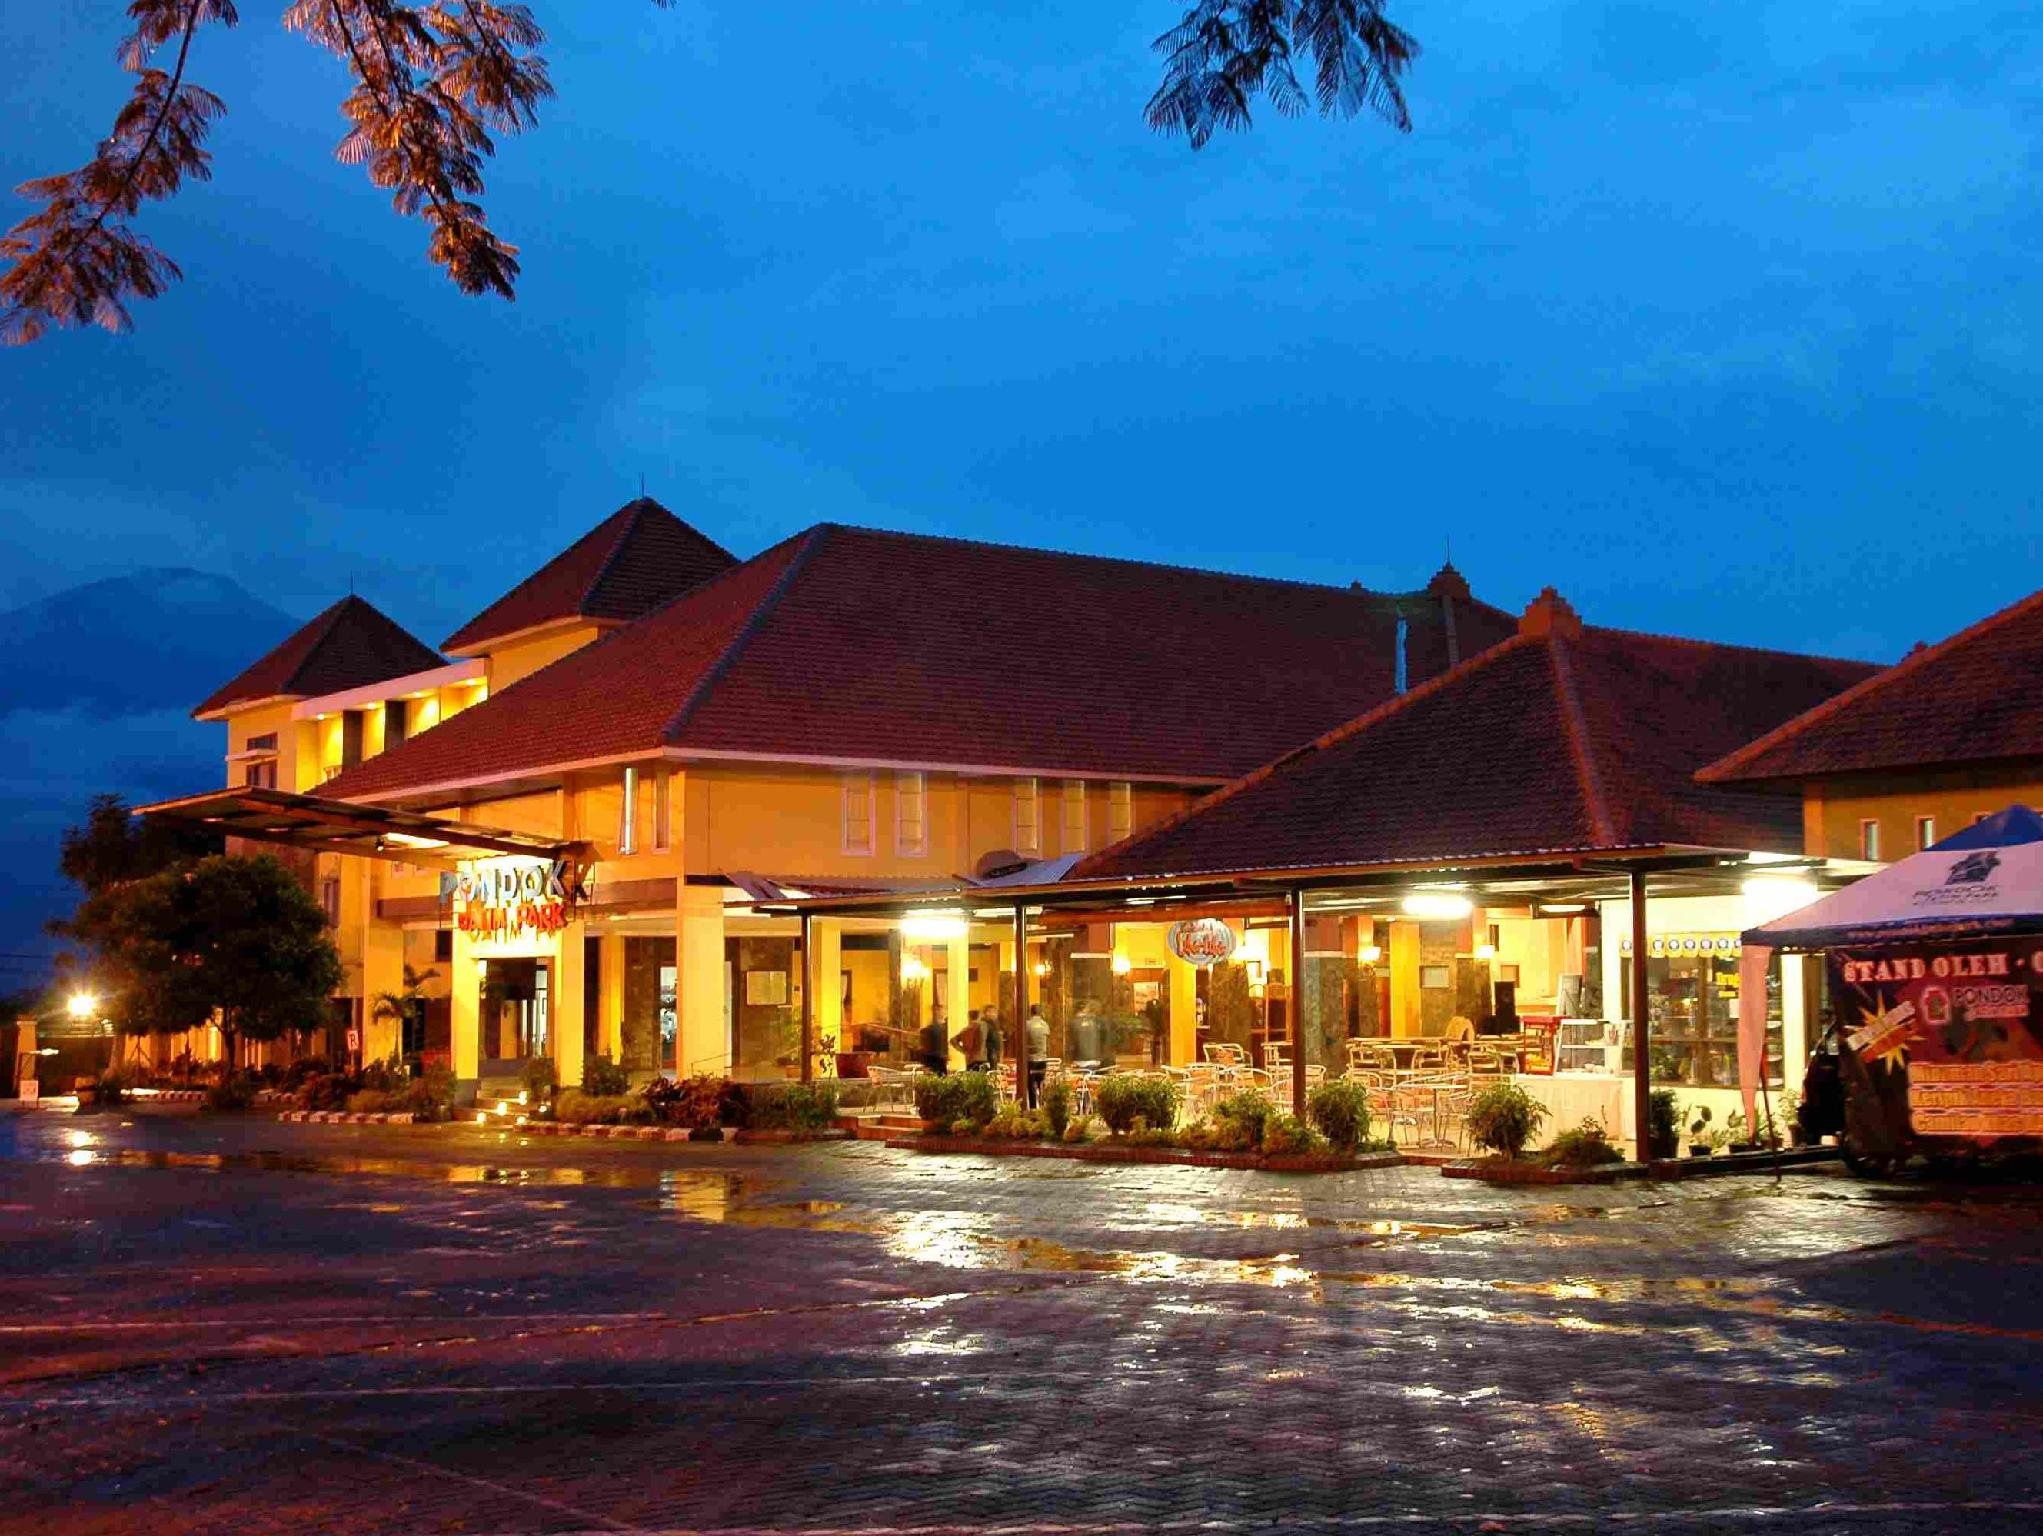 Pondok Jatim Park Hotel & Cafe - Hotels and Accommodation in Indonesia, Asia